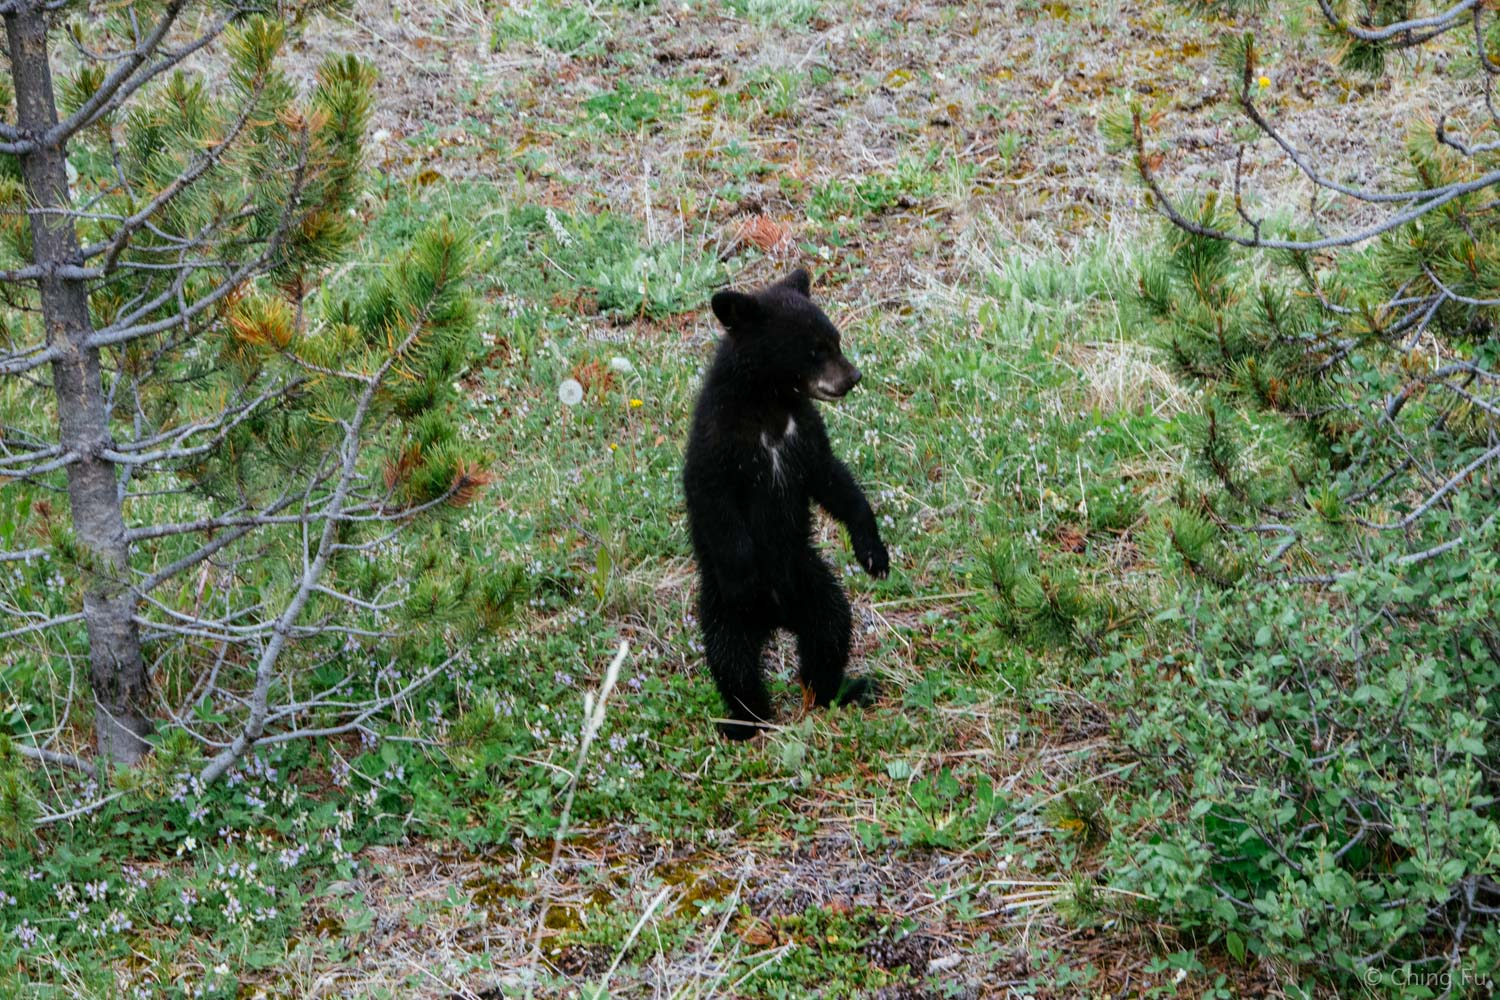 The cub was testing out her legs. She awkwardly walked a short bit before falling over. Ugh, so cute!